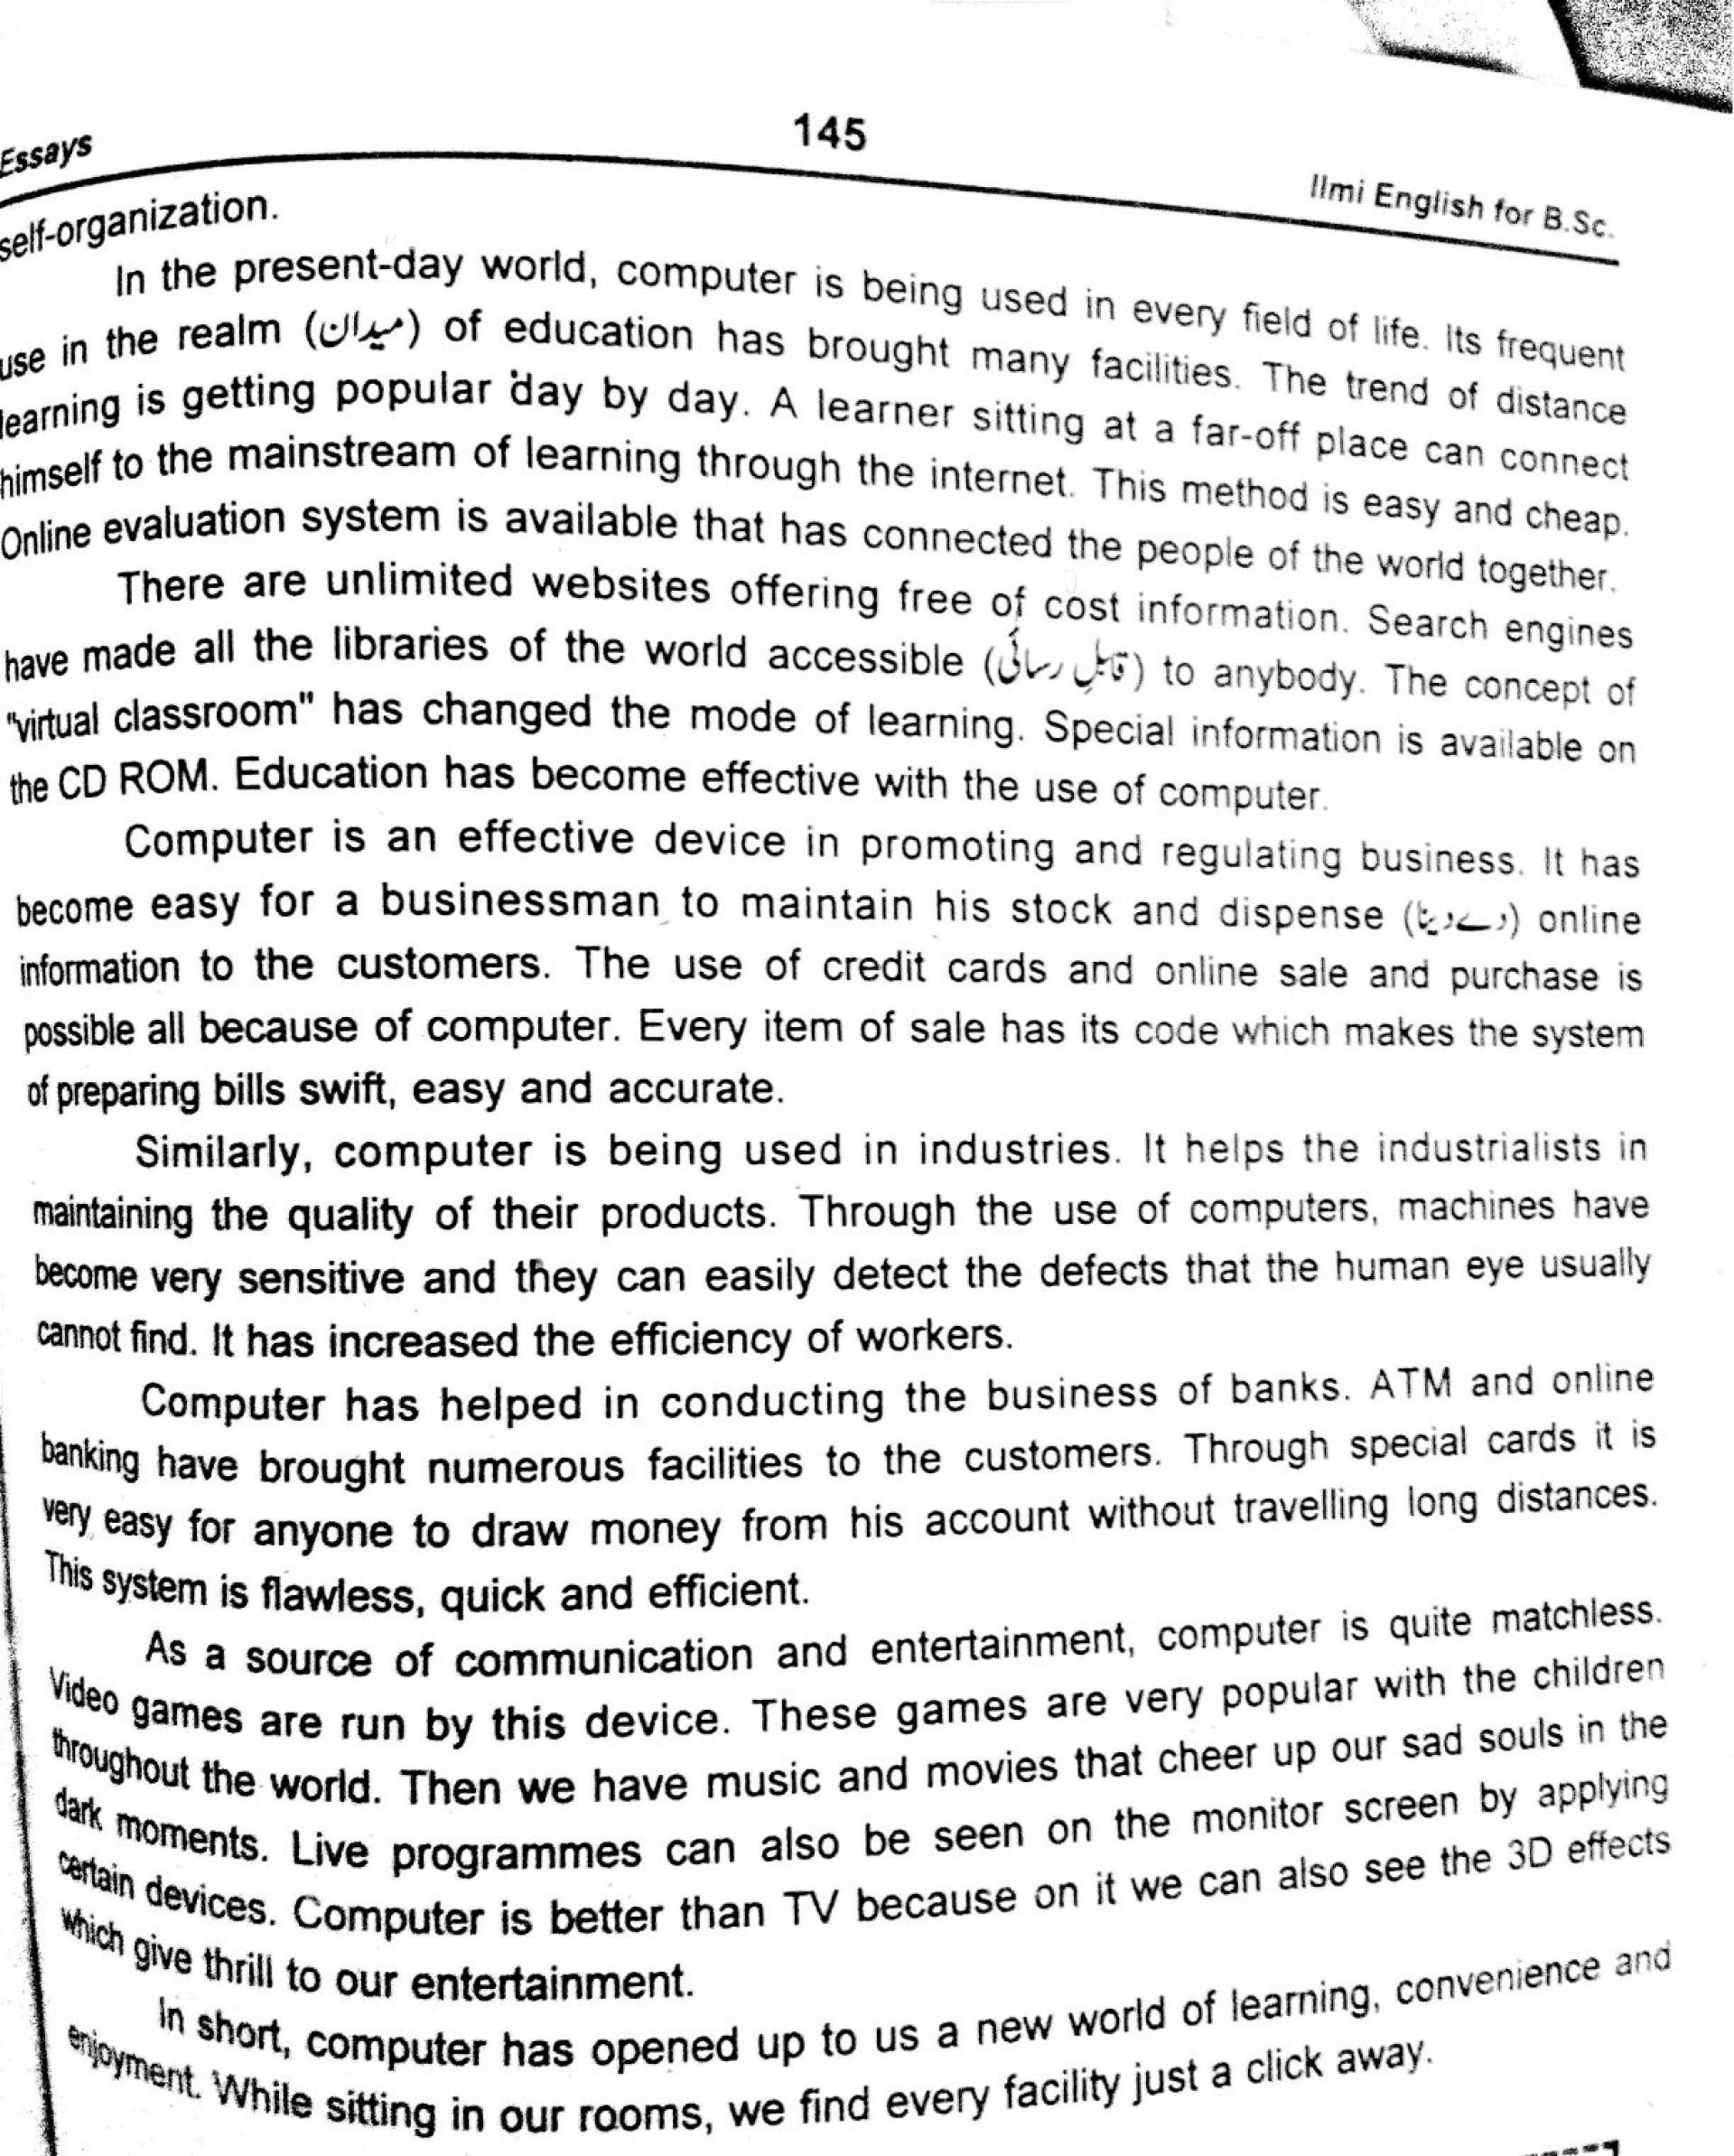 009 Computer2b252822529 Essay Of Advantages And Disadvantages Computer Archaicawful On For Students In Marathi Language 1920